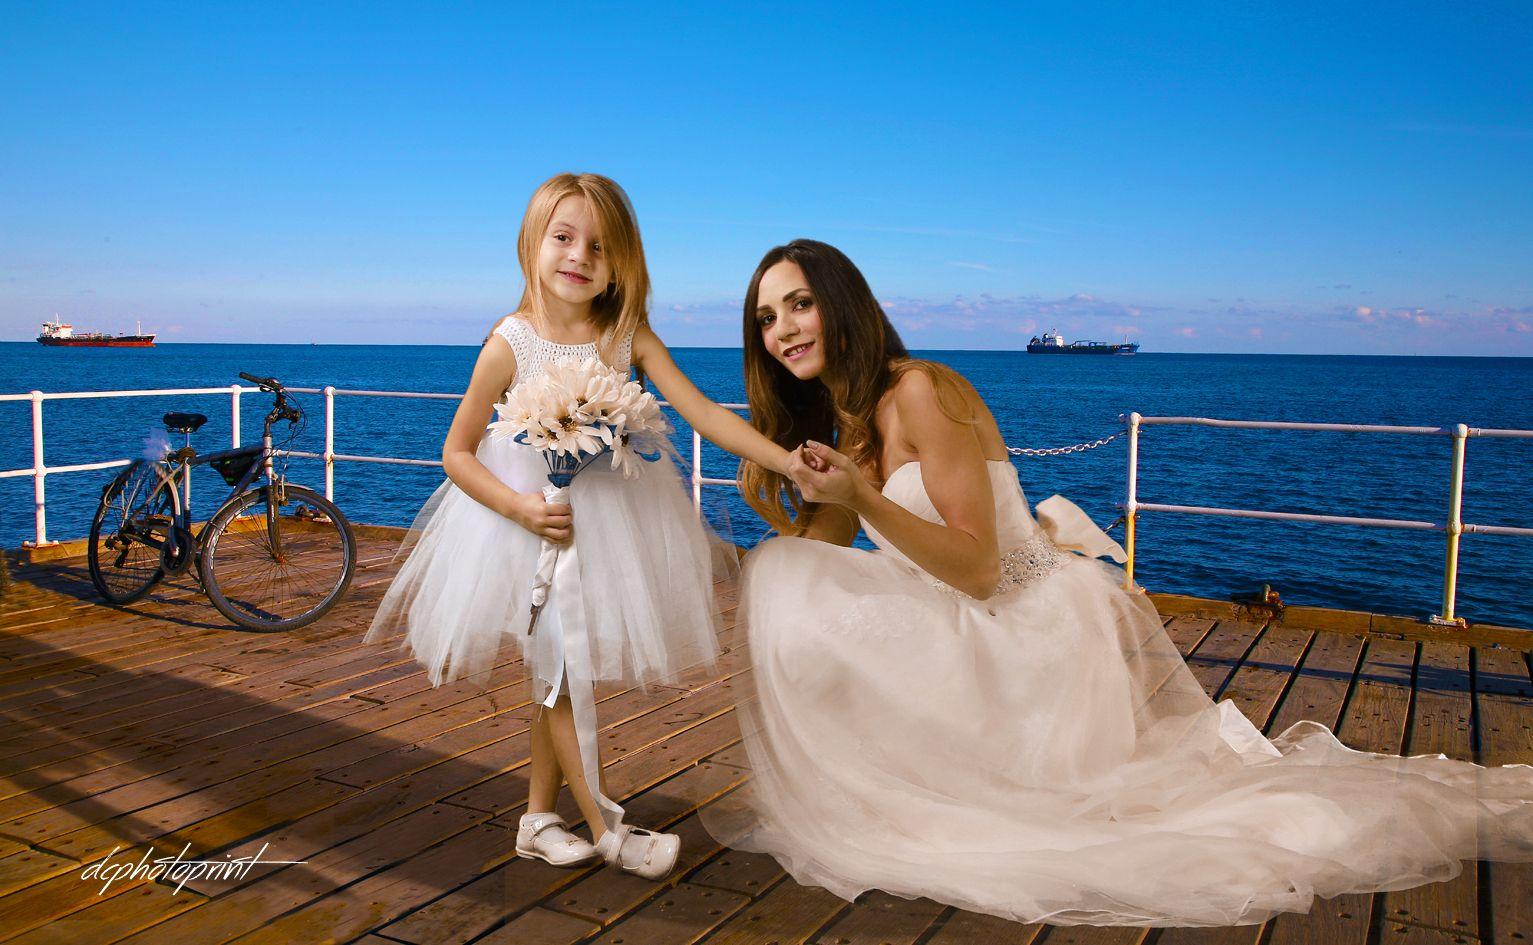 Www Dcphotoprint Com Limassol Wedding Photographers Prices I Offer Wedding P Wedding Photographer Prices Affordable Wedding Photography Michigan Wedding Venues